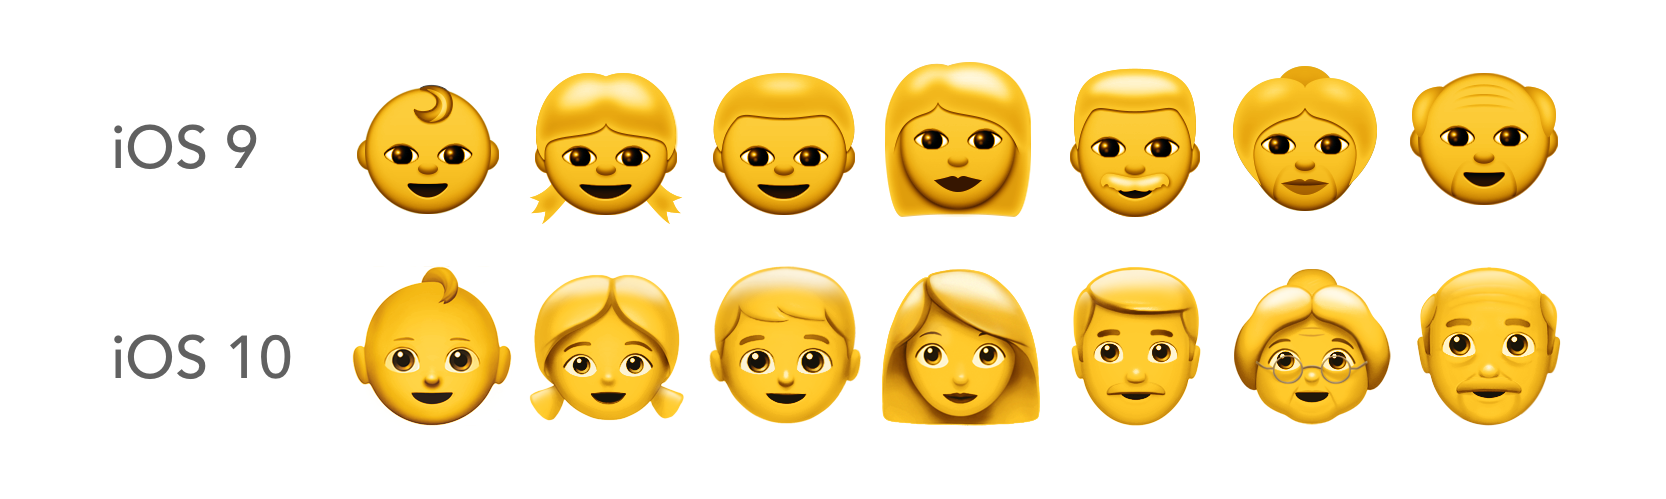 how to get new emojis on iphone 4s